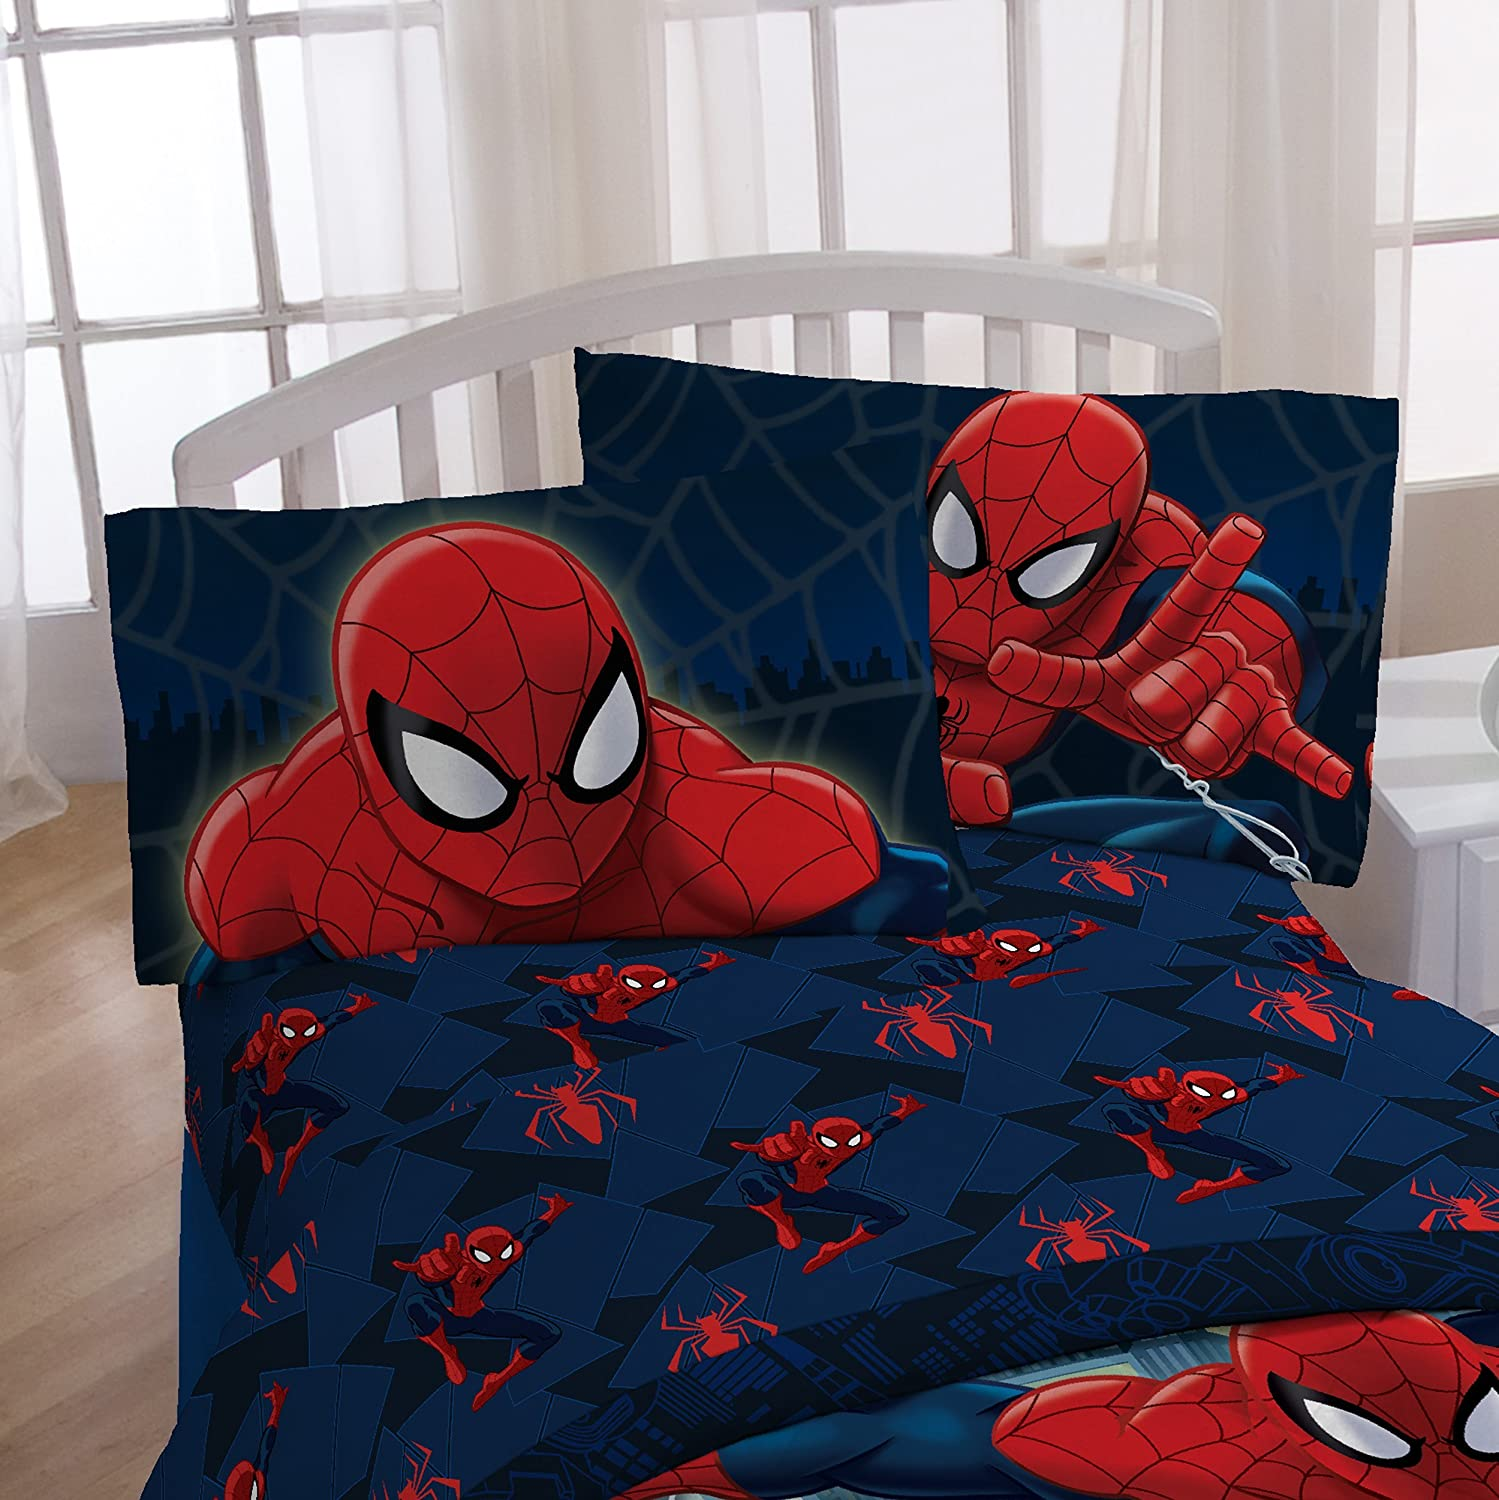 Avengers bedding set twin - Marvel Spiderman Microfiber 3 Piece Twin Sheet Set